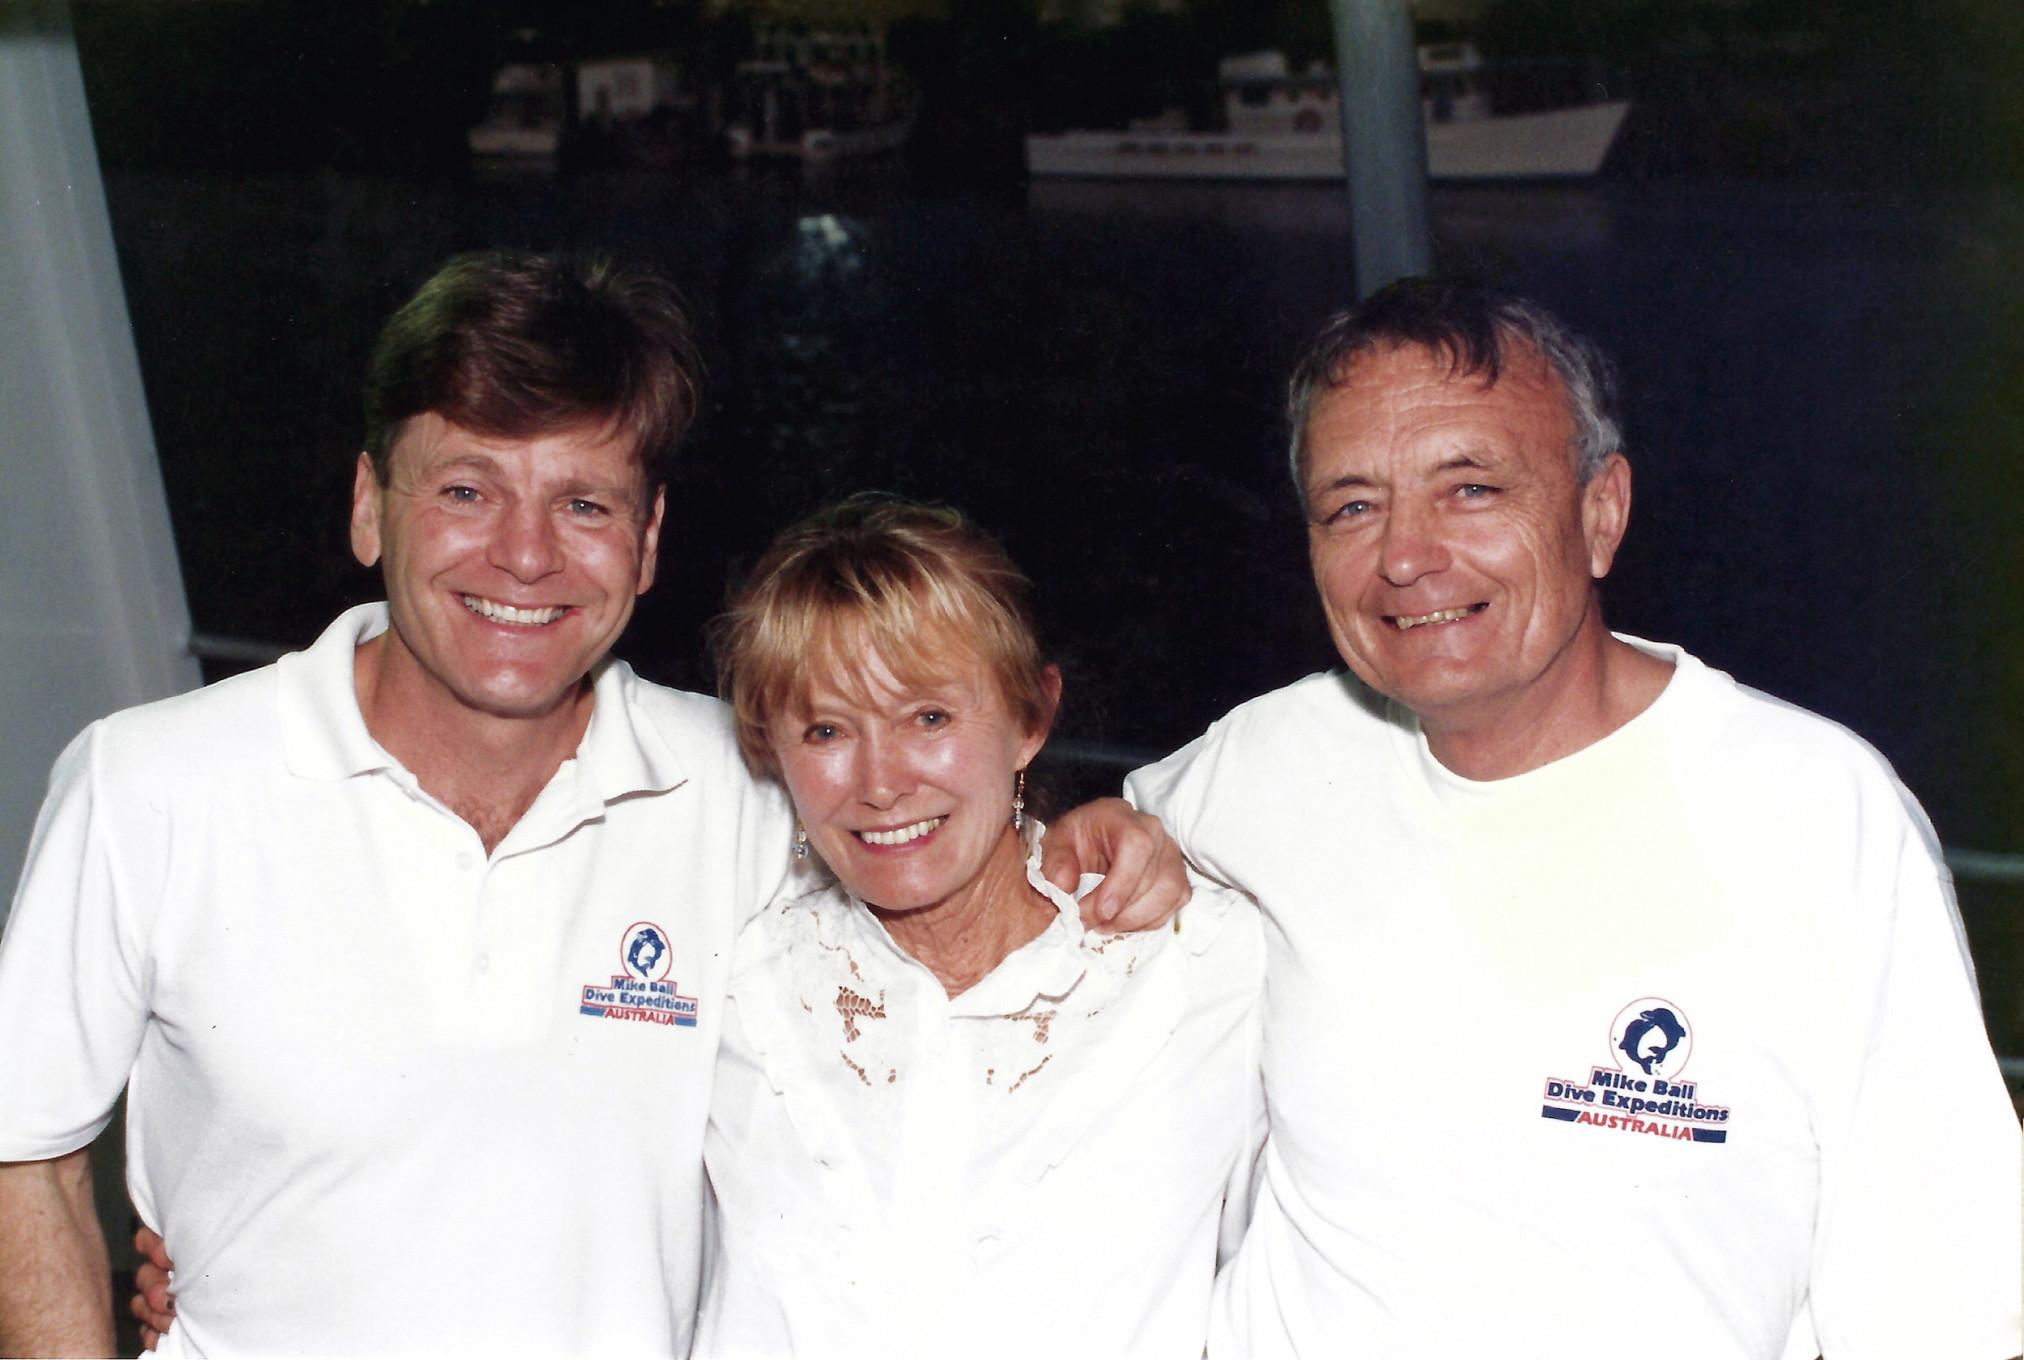 Mike Ball with Ron and Valarie Taylor